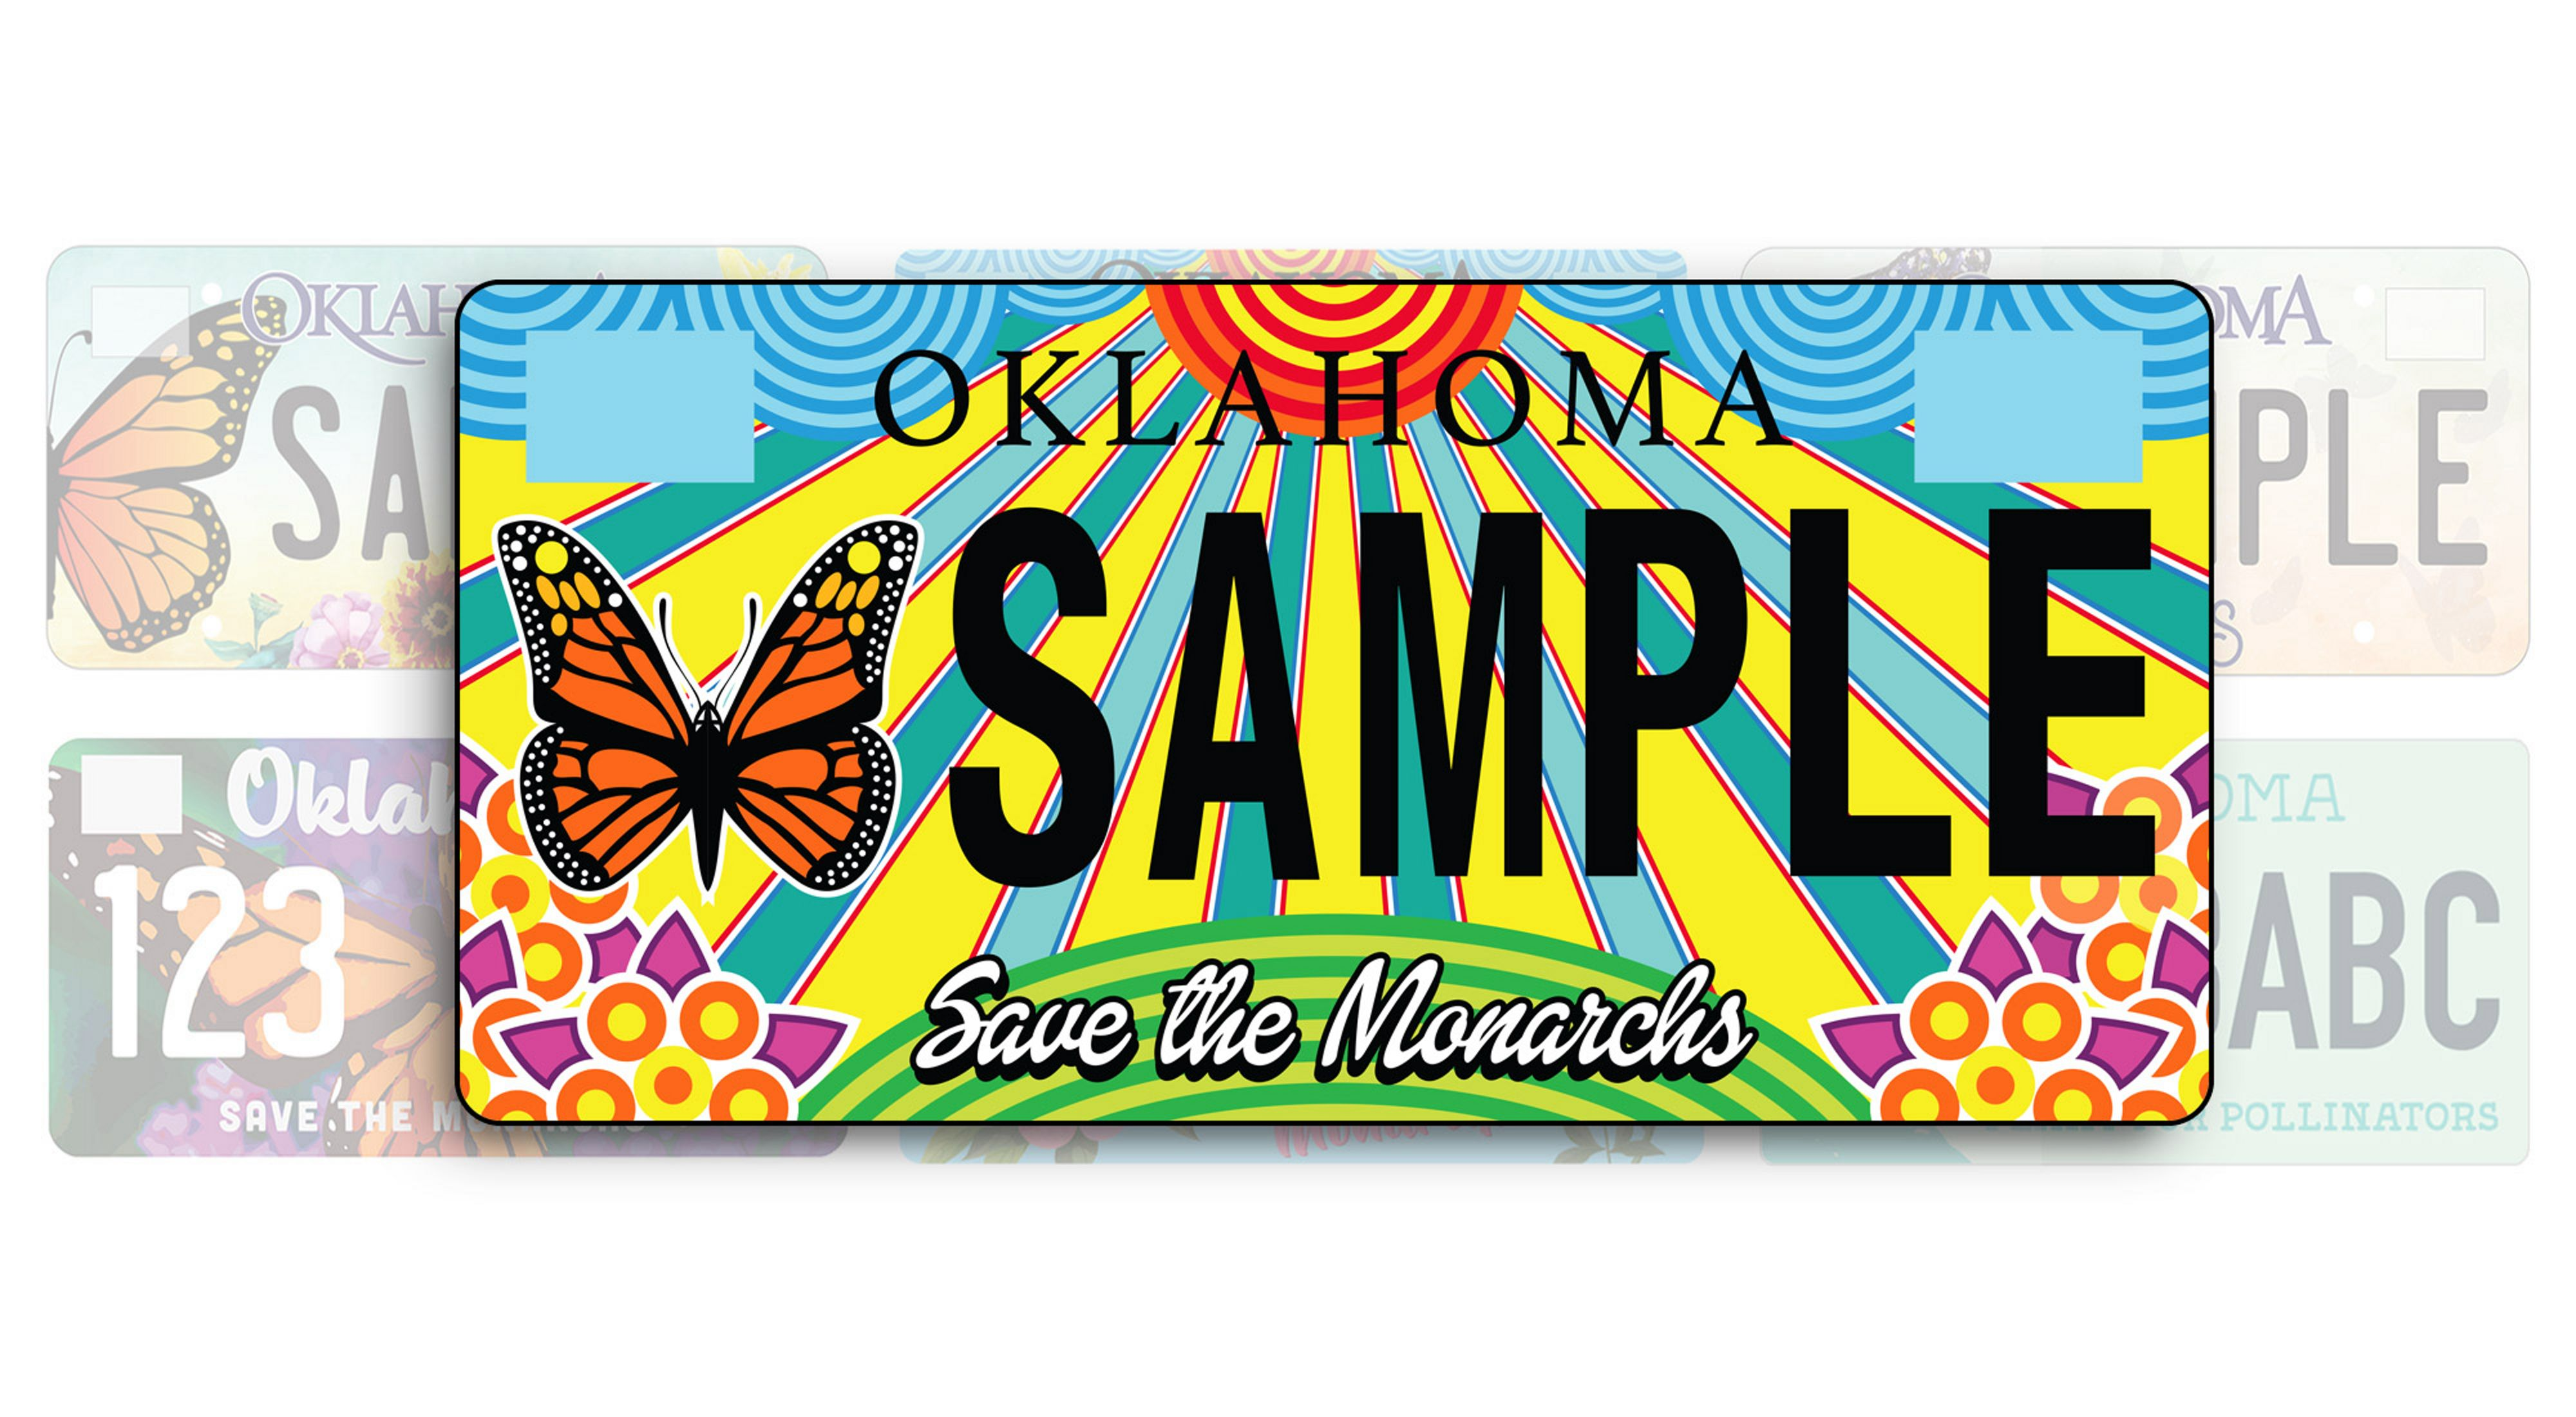 Oklahoma Monarch License plate benefiting The Nature Conservancy.